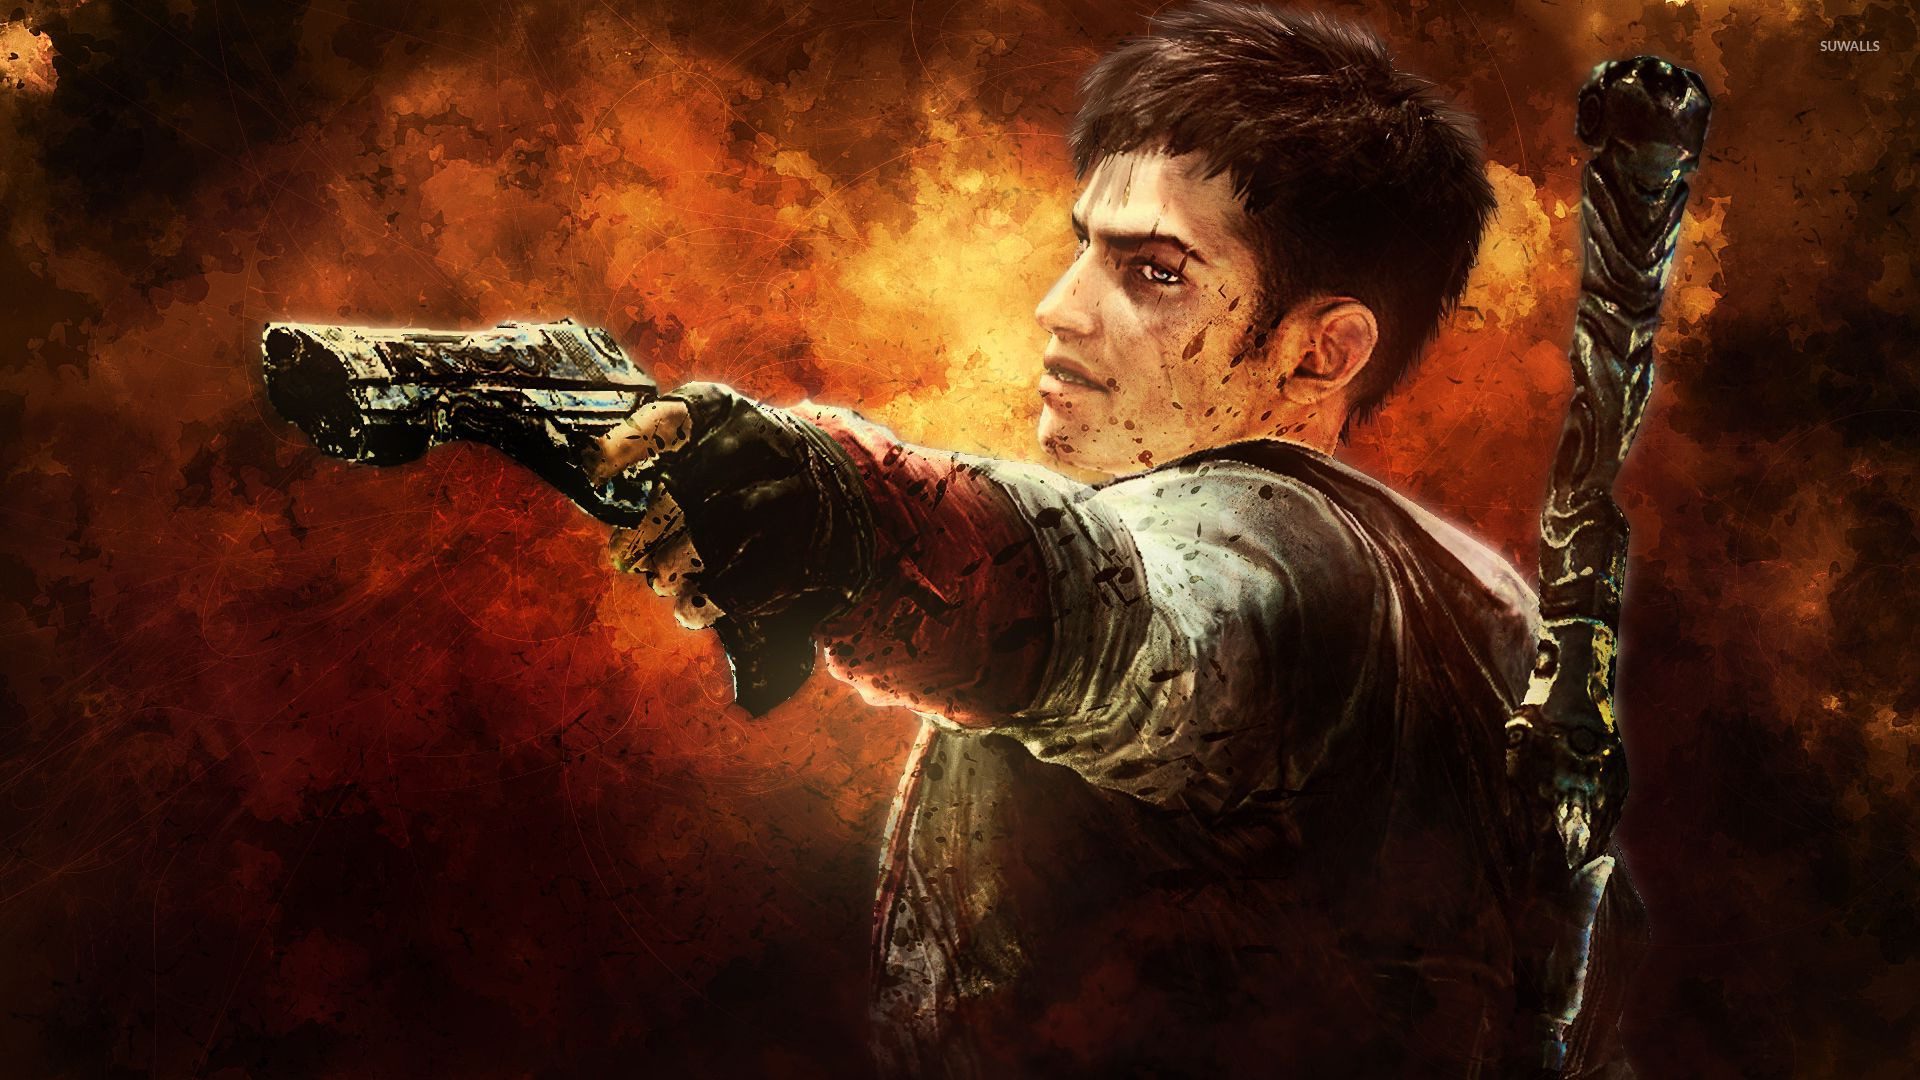 Dante   Devil May Cry 5 wallpaper   Game wallpapers   15670 1920x1080